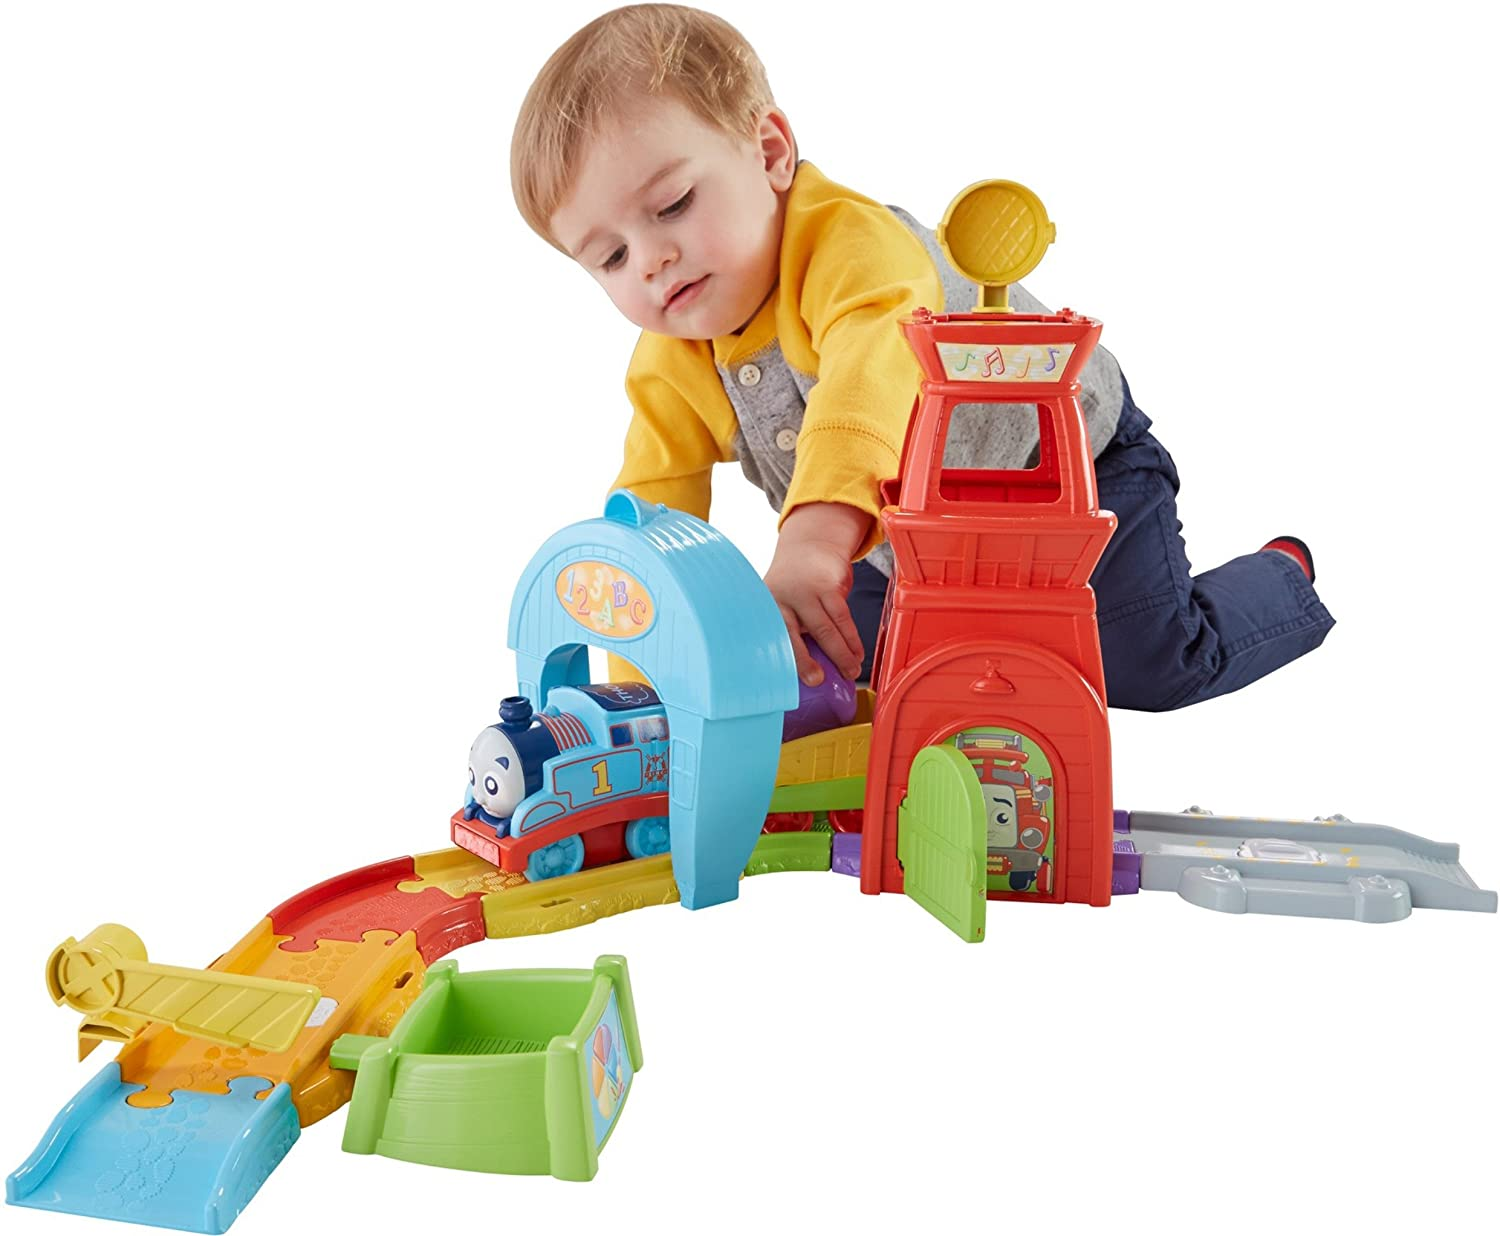 Thomas & Friends Fisher Price My First, Railway Pals Rescue Tower by Thomas & Friends